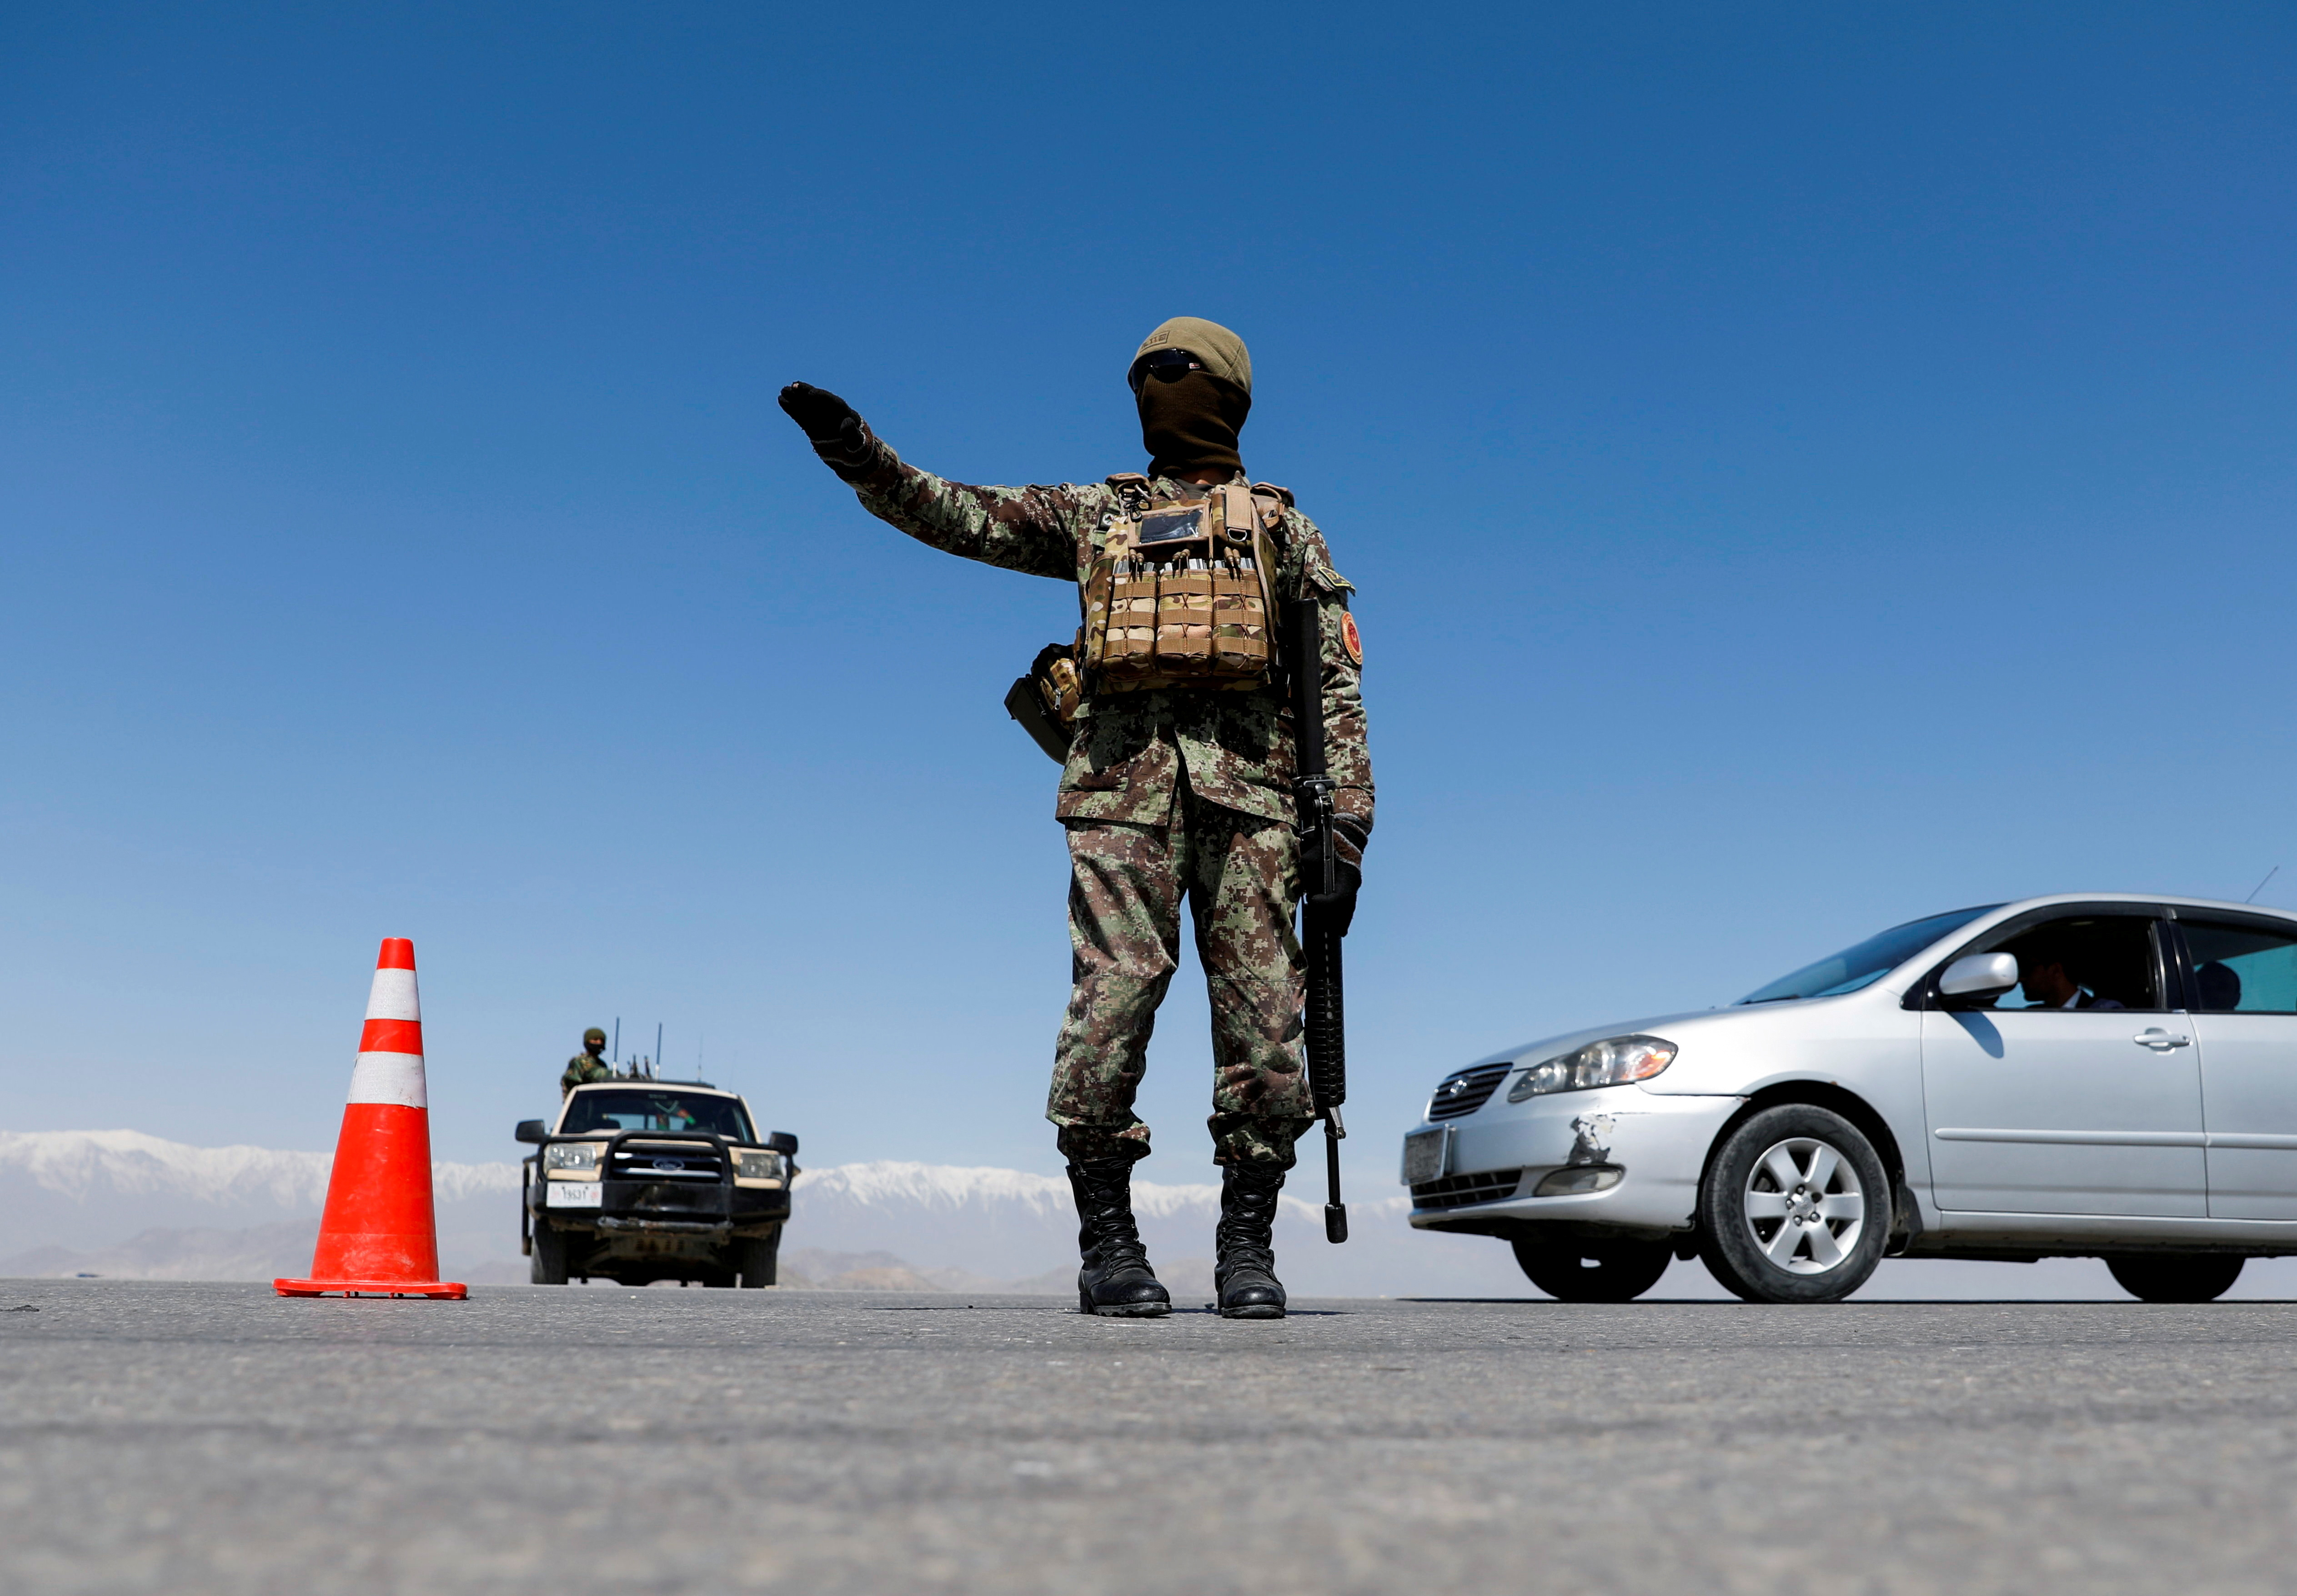 An Afghan National Army soldier stands guard at a checkpoint on the outskirts of Kabul, Afghanistan April 21, 2021. REUTERS/Mohammad Ismail/File Photo